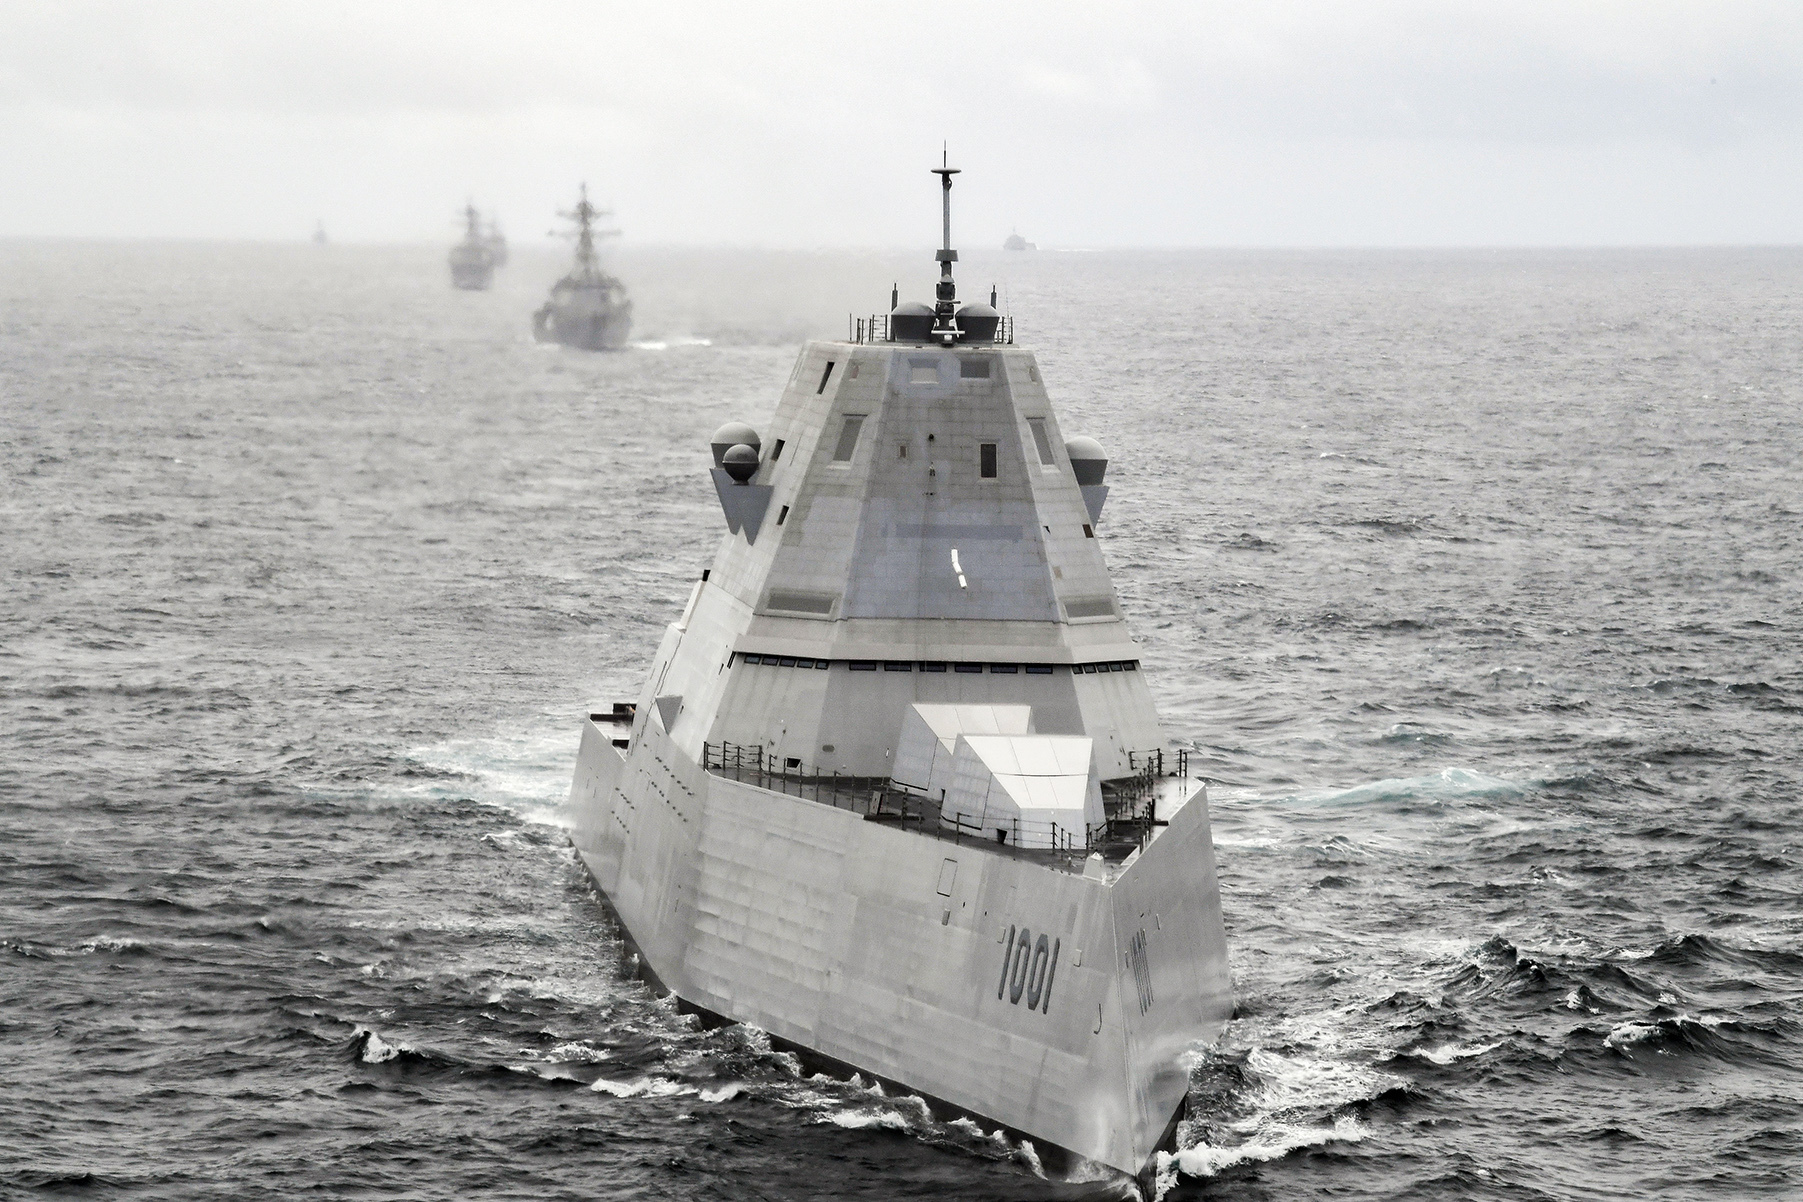 The Zumwalt-class guided-missile destroyer USS Michael Monsoor (DDG 1001) leads a formation during U.S. Pacific Fleet's Unmanned Systems Integrated Battle Problem (UxS IBP) April 21, 2021. (Chief Mass Communication Specialist Shannon Renfroe/U.S. Navy)